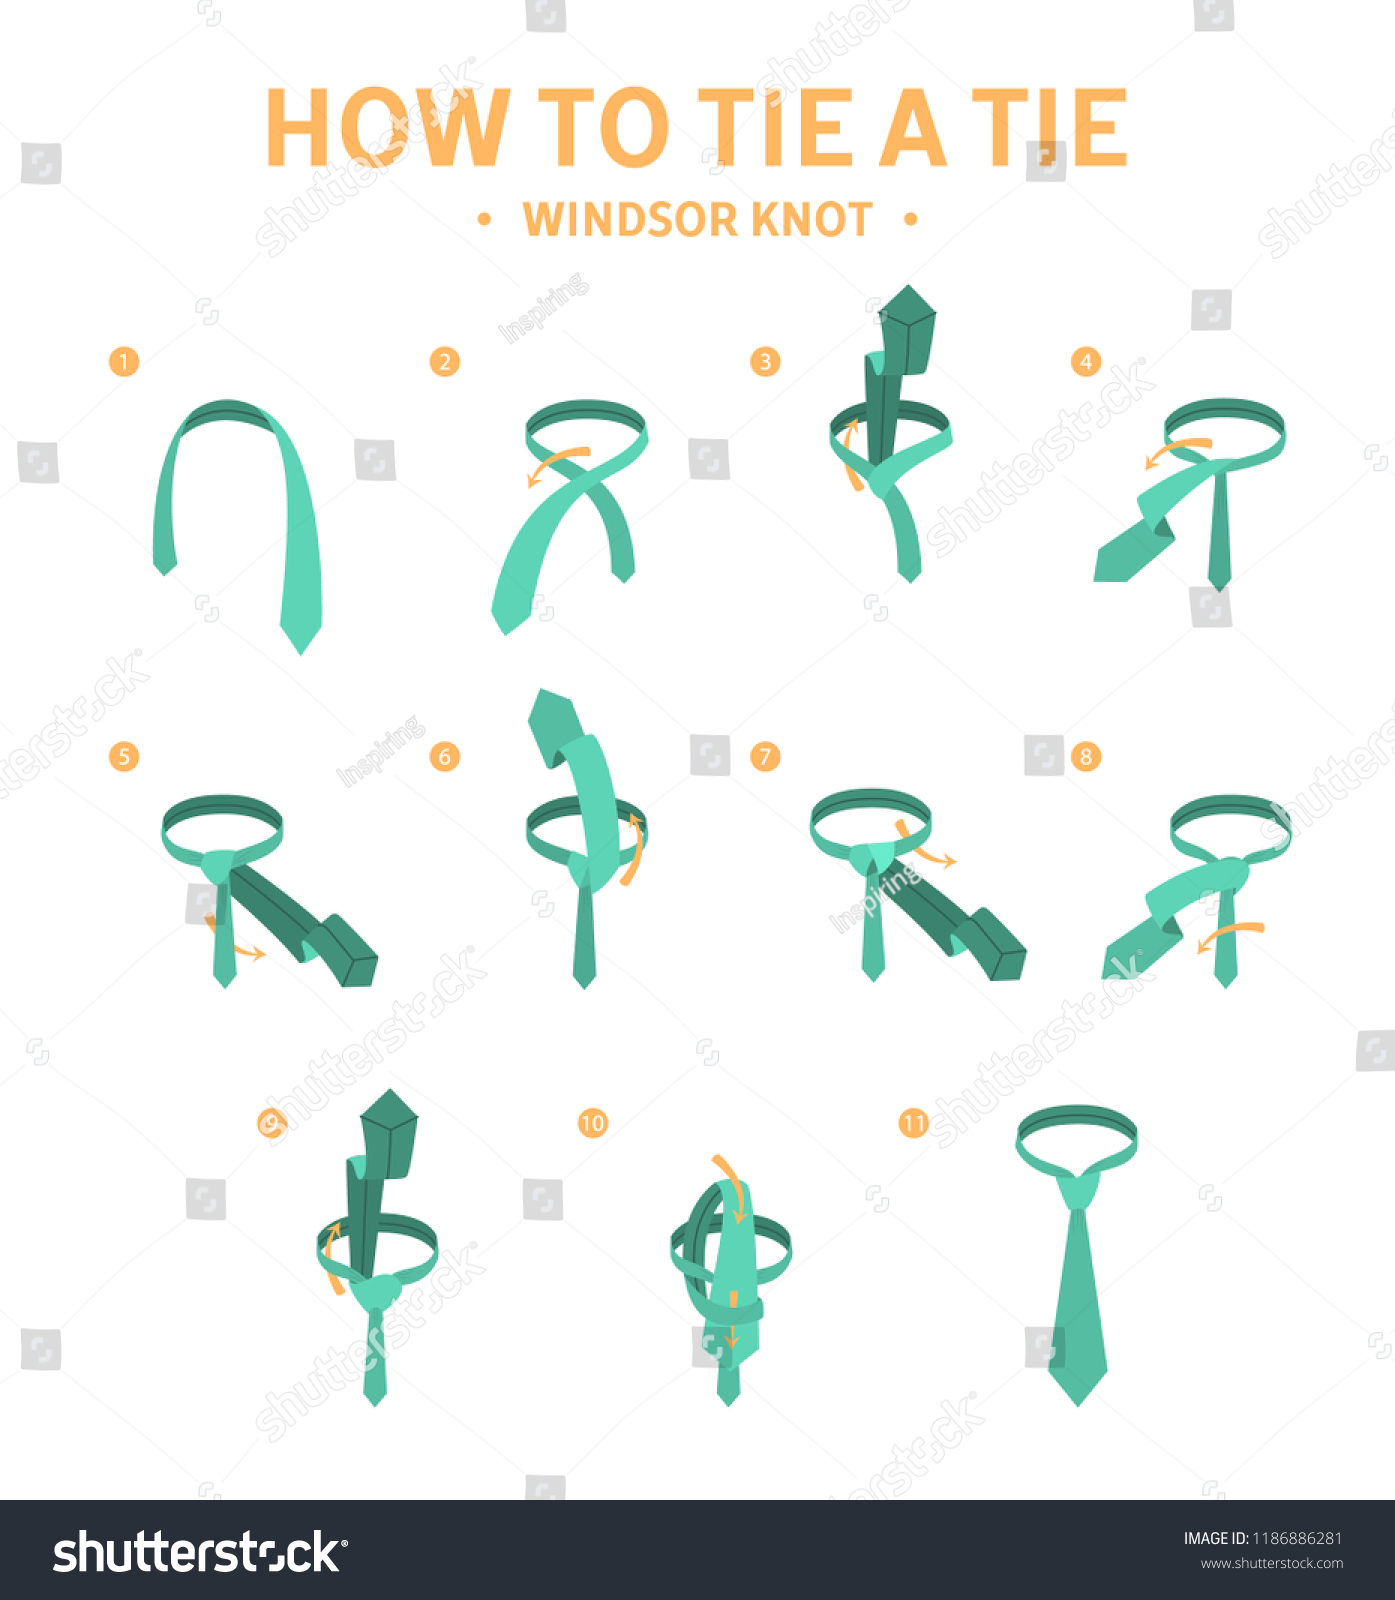 How Tie Windsor Knot Instruction Stock Vector Royalty Free To A Tying Guide For Making Necktie Elegant Formal